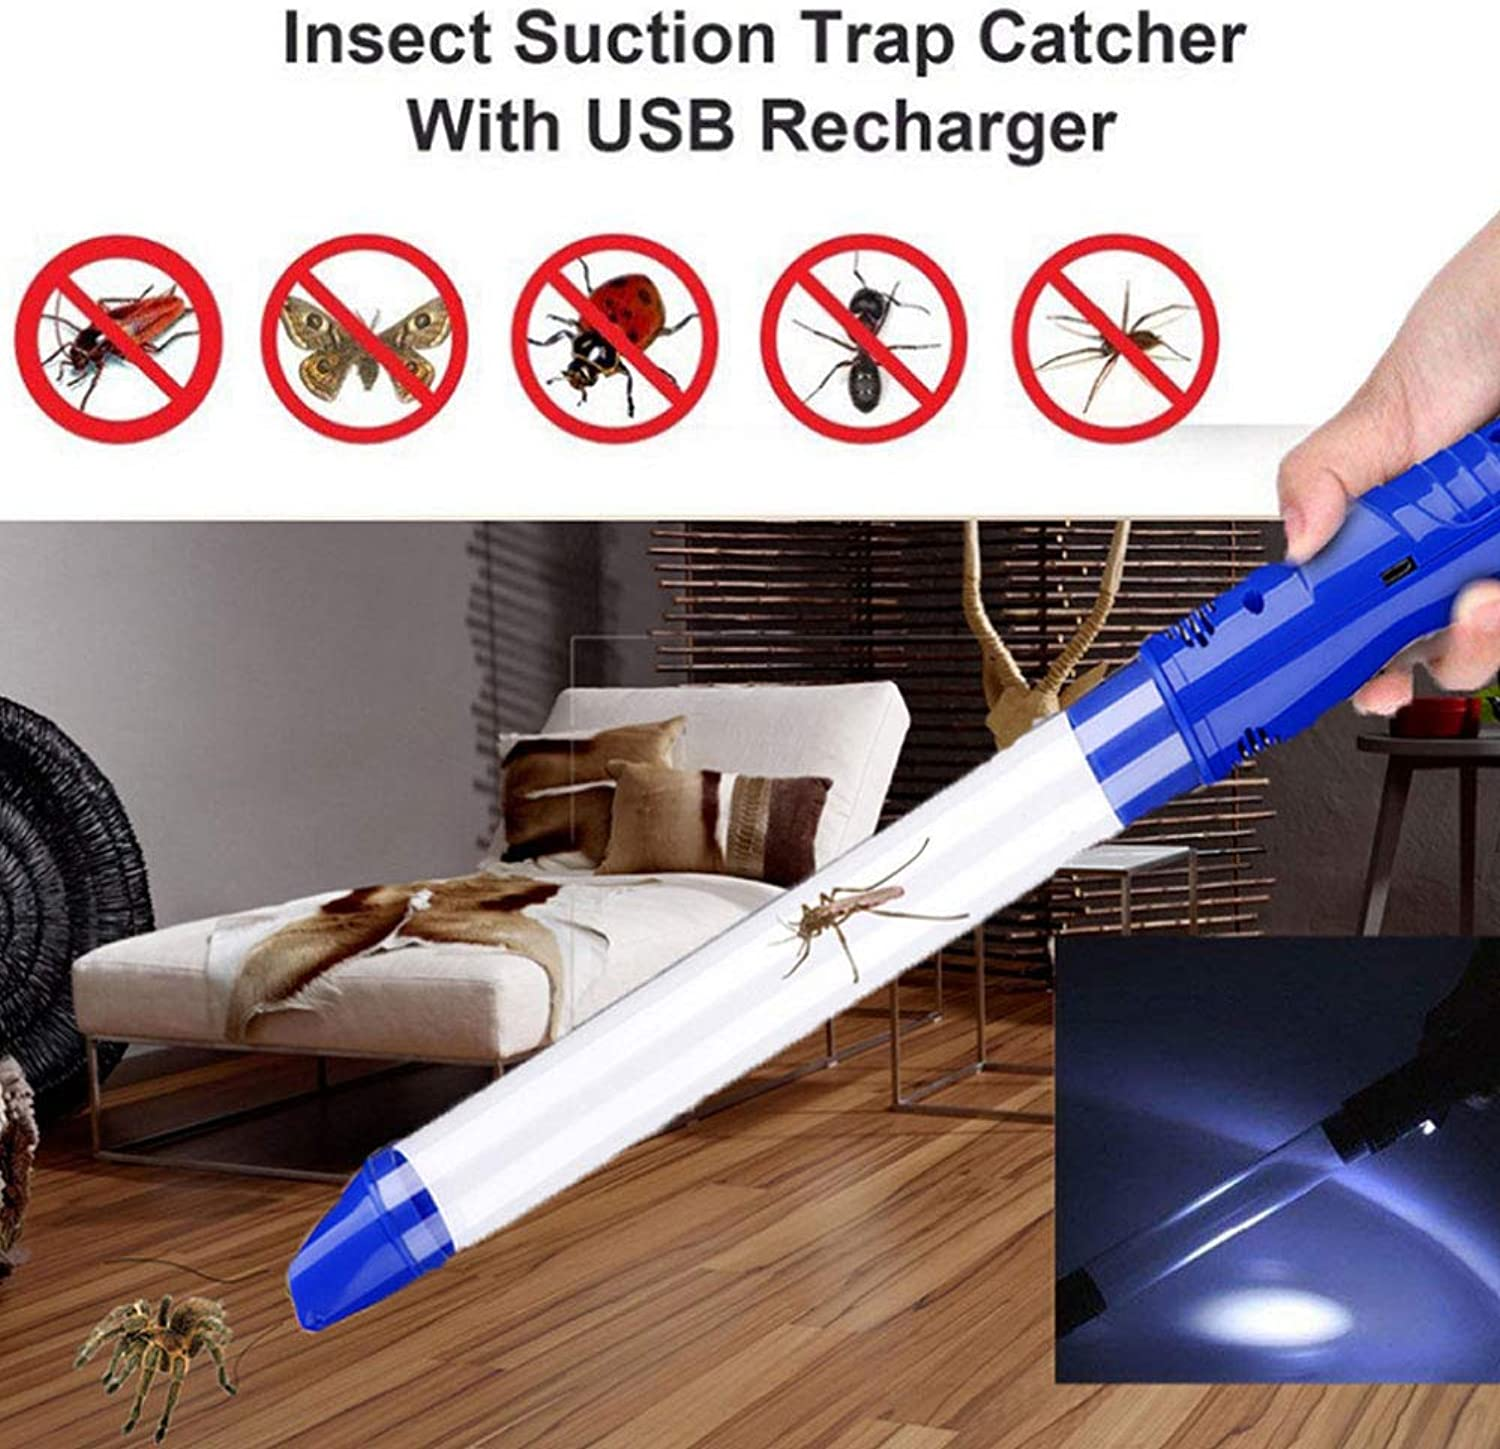 Humane Spider Catcher, Bug Insect Catcher Vacuum with LED Flashlight, USB Rechargeable Vacuum Spider Catcher Pest Control for Home and Office,bluee